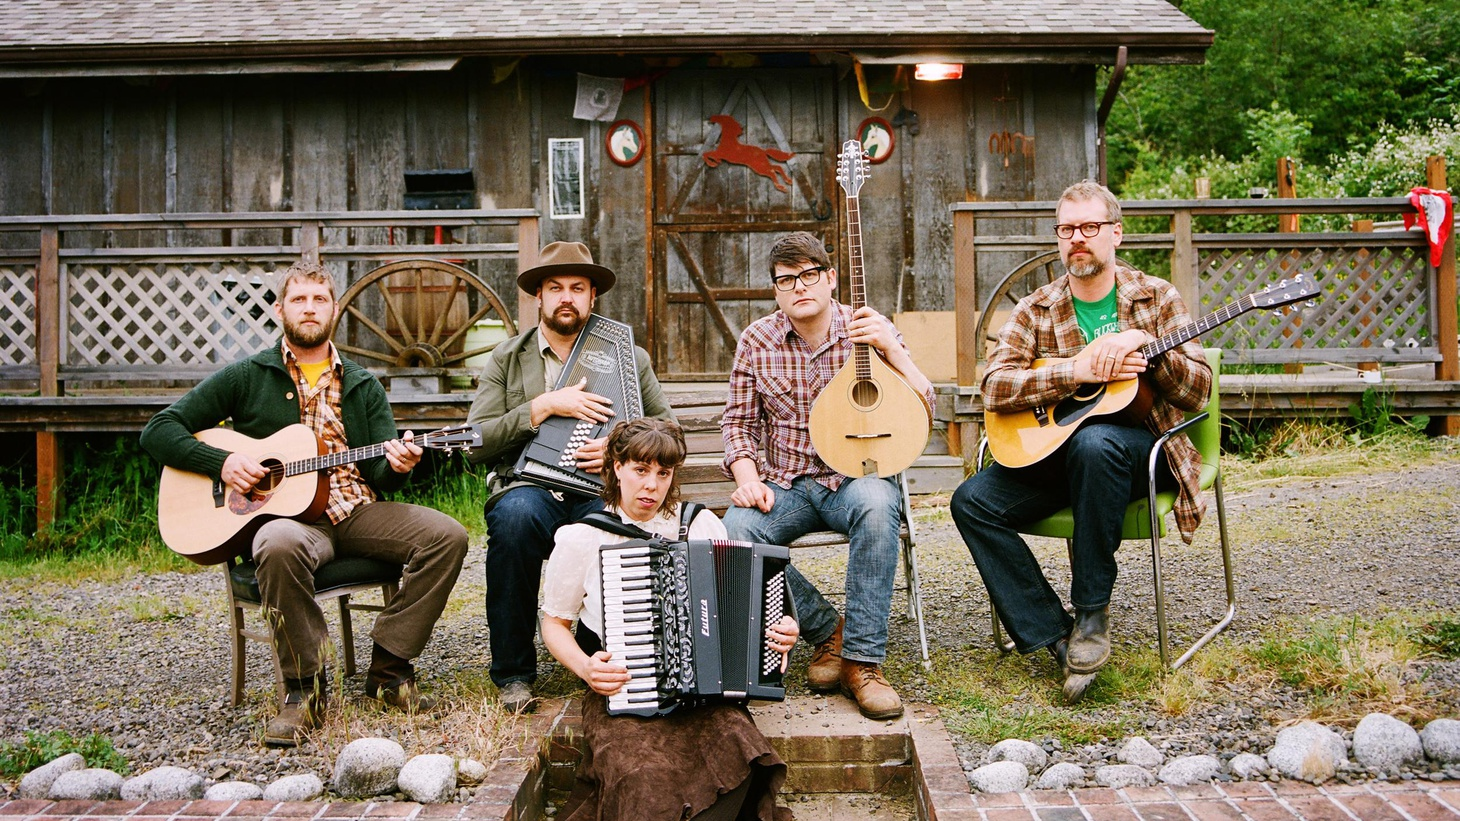 The Decemberists' new release, The King Is Dead, pays tribute to artists they love like R.E.M. and Neil Young.